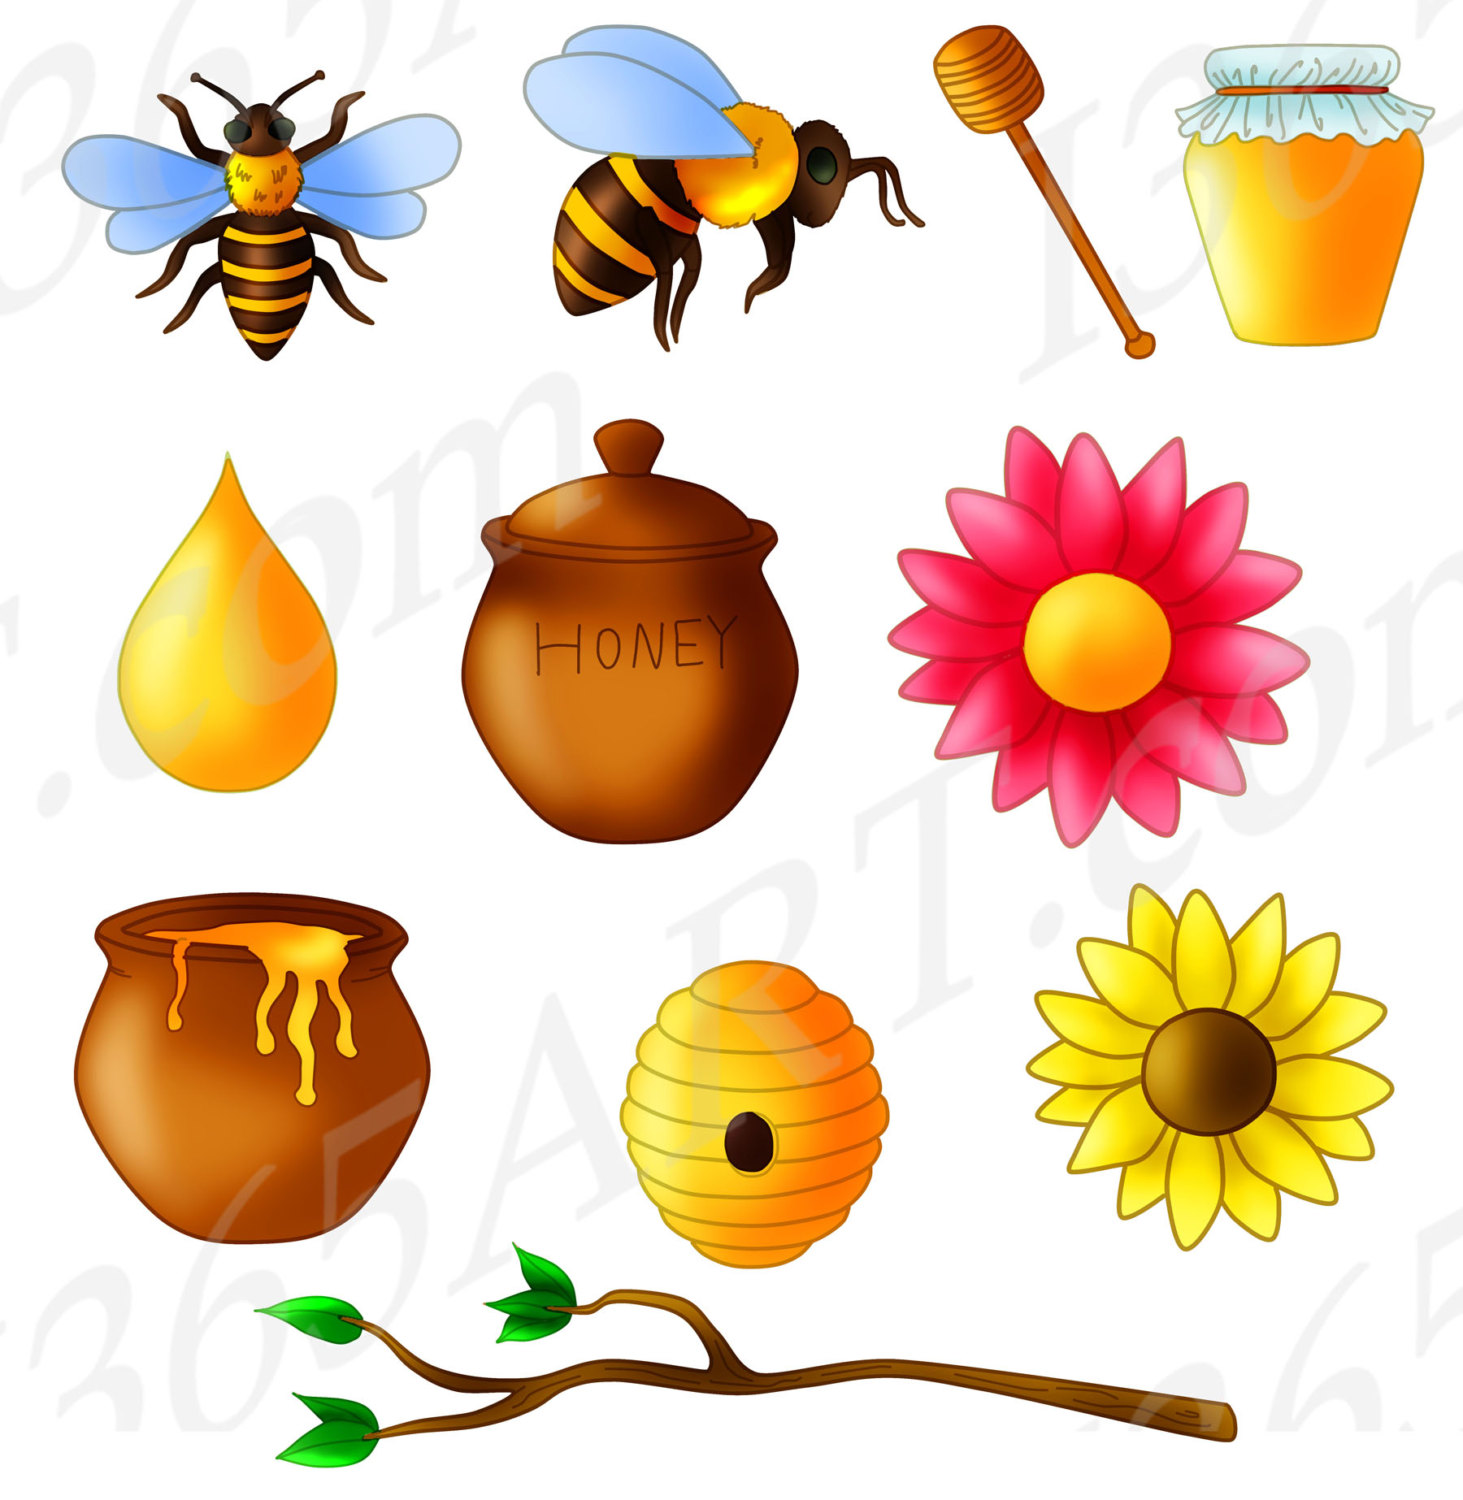 1463x1500 50% Off Bees Clipart, Honey Bees Clip Art, Bumble Bees, Bees